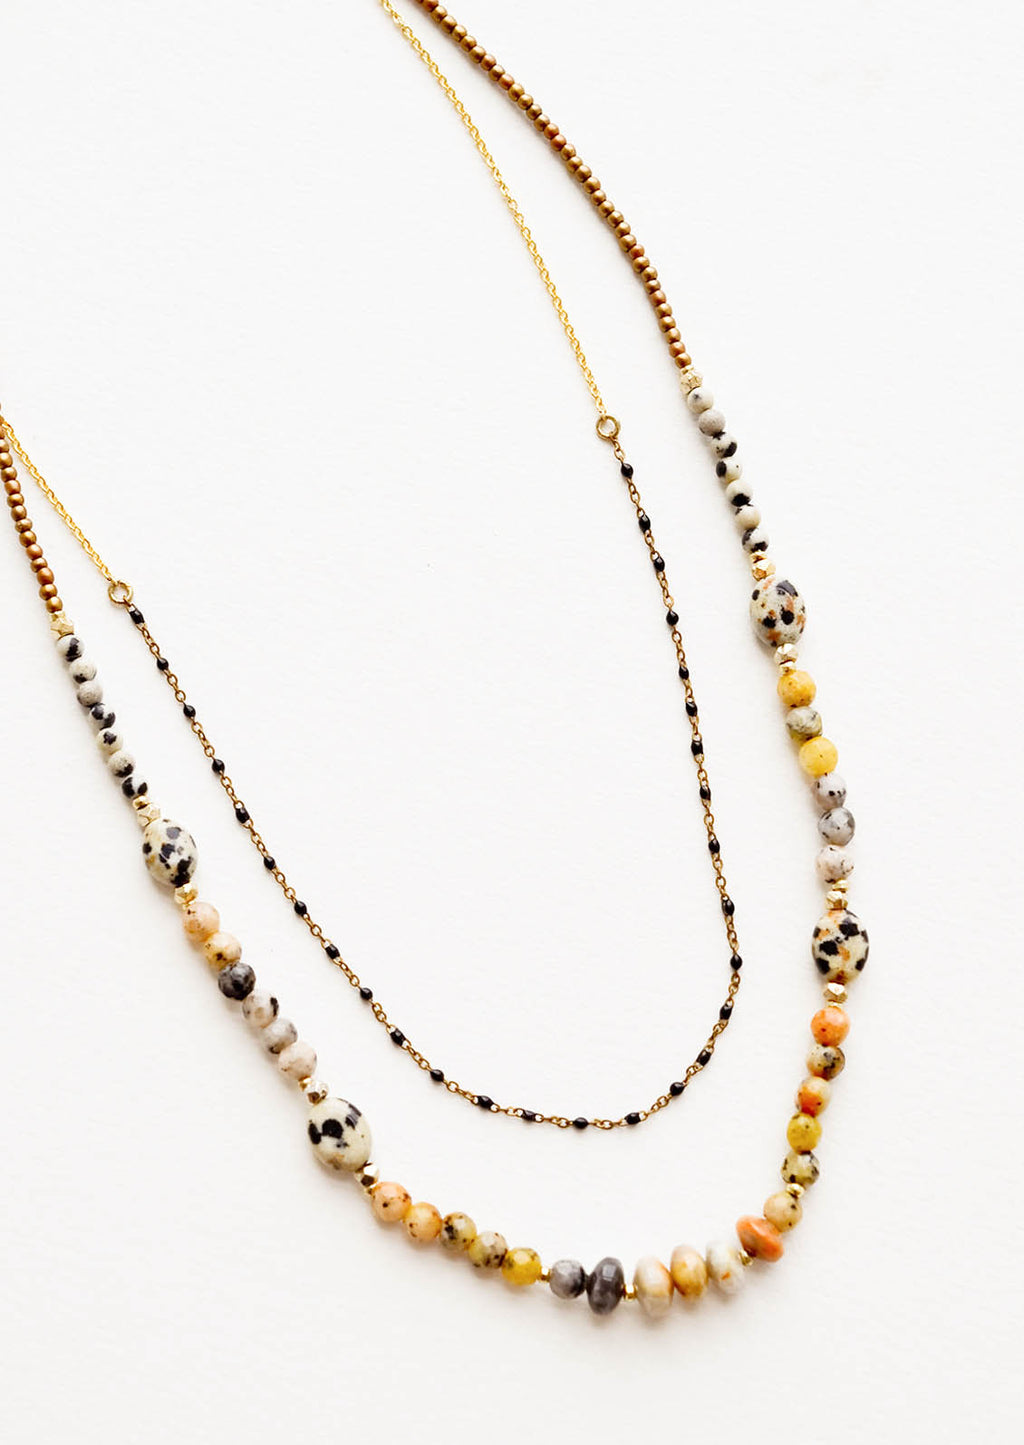 1: Layered beaded necklace with the shorter strand featuring gold chain alternating with black beads, and the longer chain featuring speckled dalmatian jasper beads.